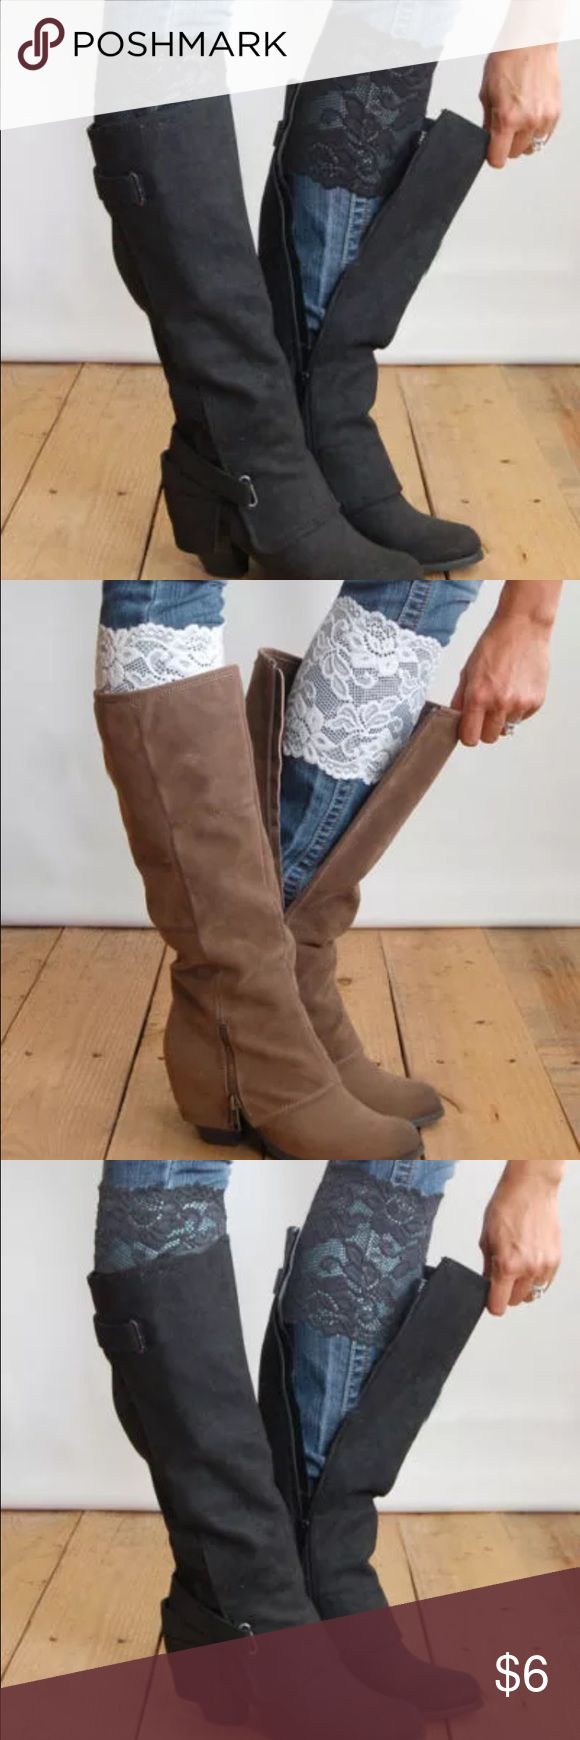 COMING SOON  Fall Lace Sleeves Absolutely adorable lace sleeves for just under your boots! Super cute and stylish for fall, they add the extra oomph to any outfit. 2 for $10 one for $6!  sohocarter Accessories Hosiery & Socks